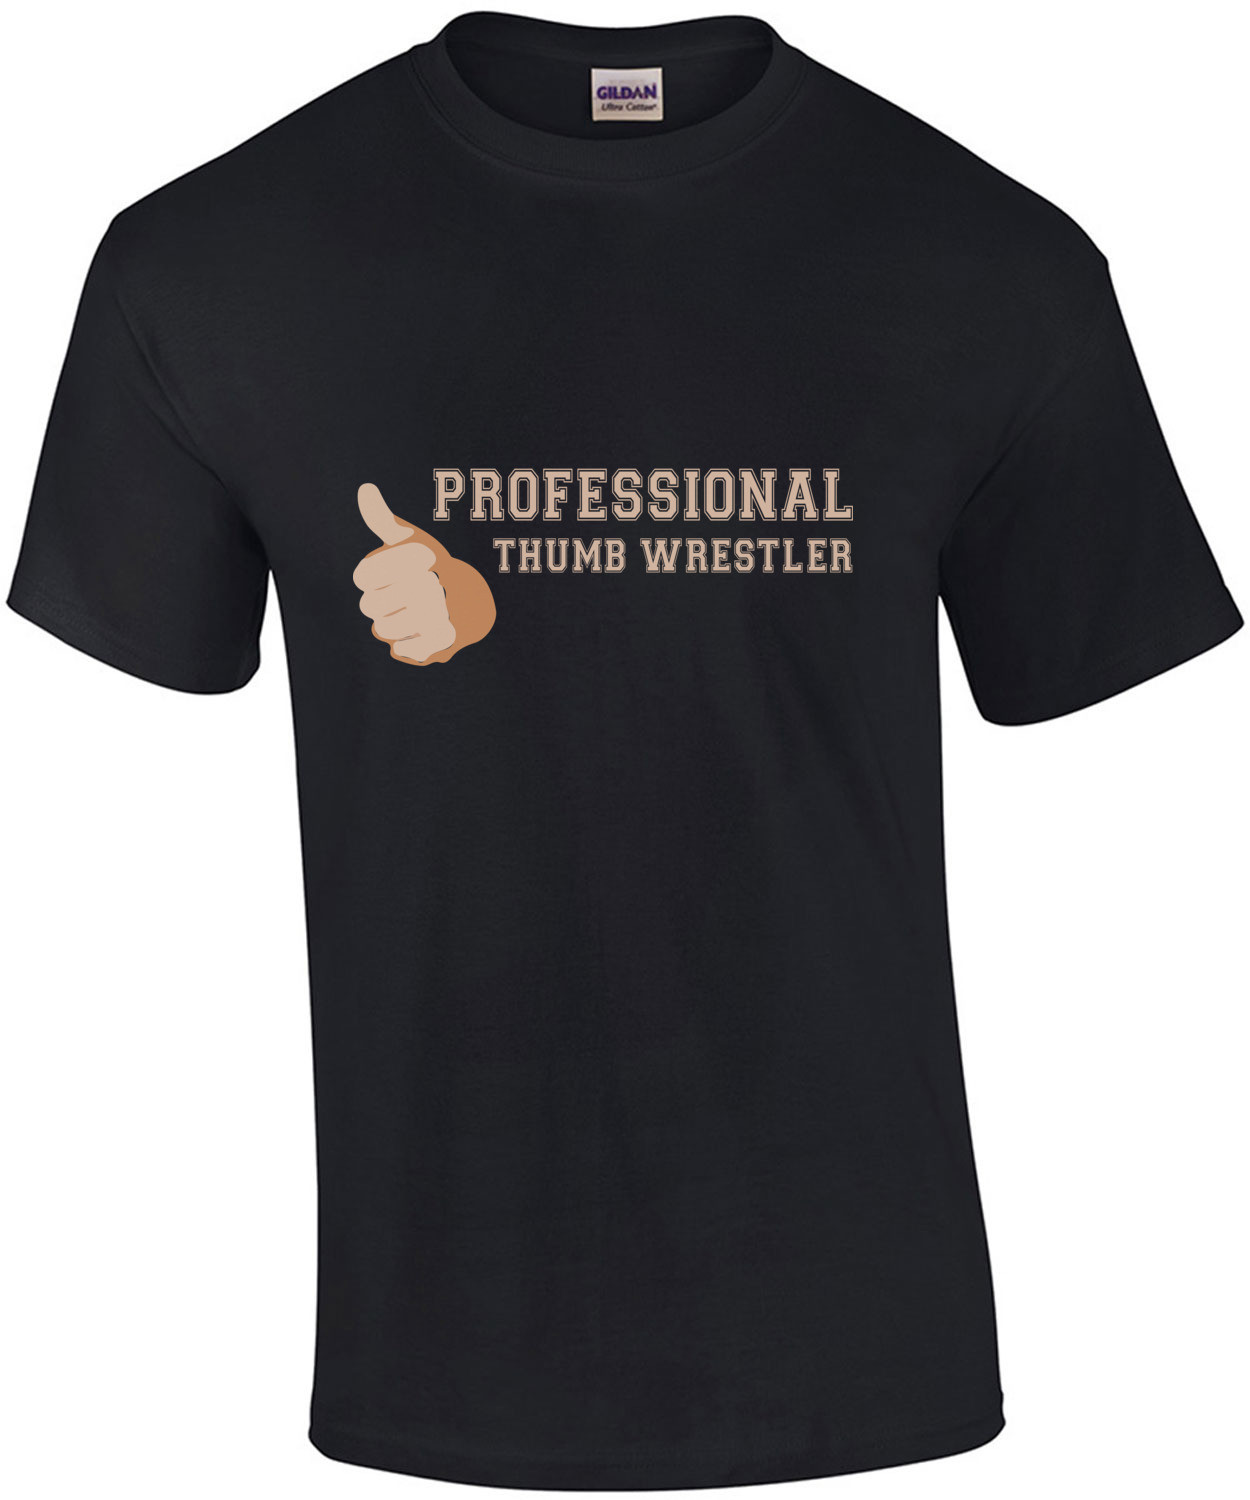 Professional Thumb Wrestler T-Shirt